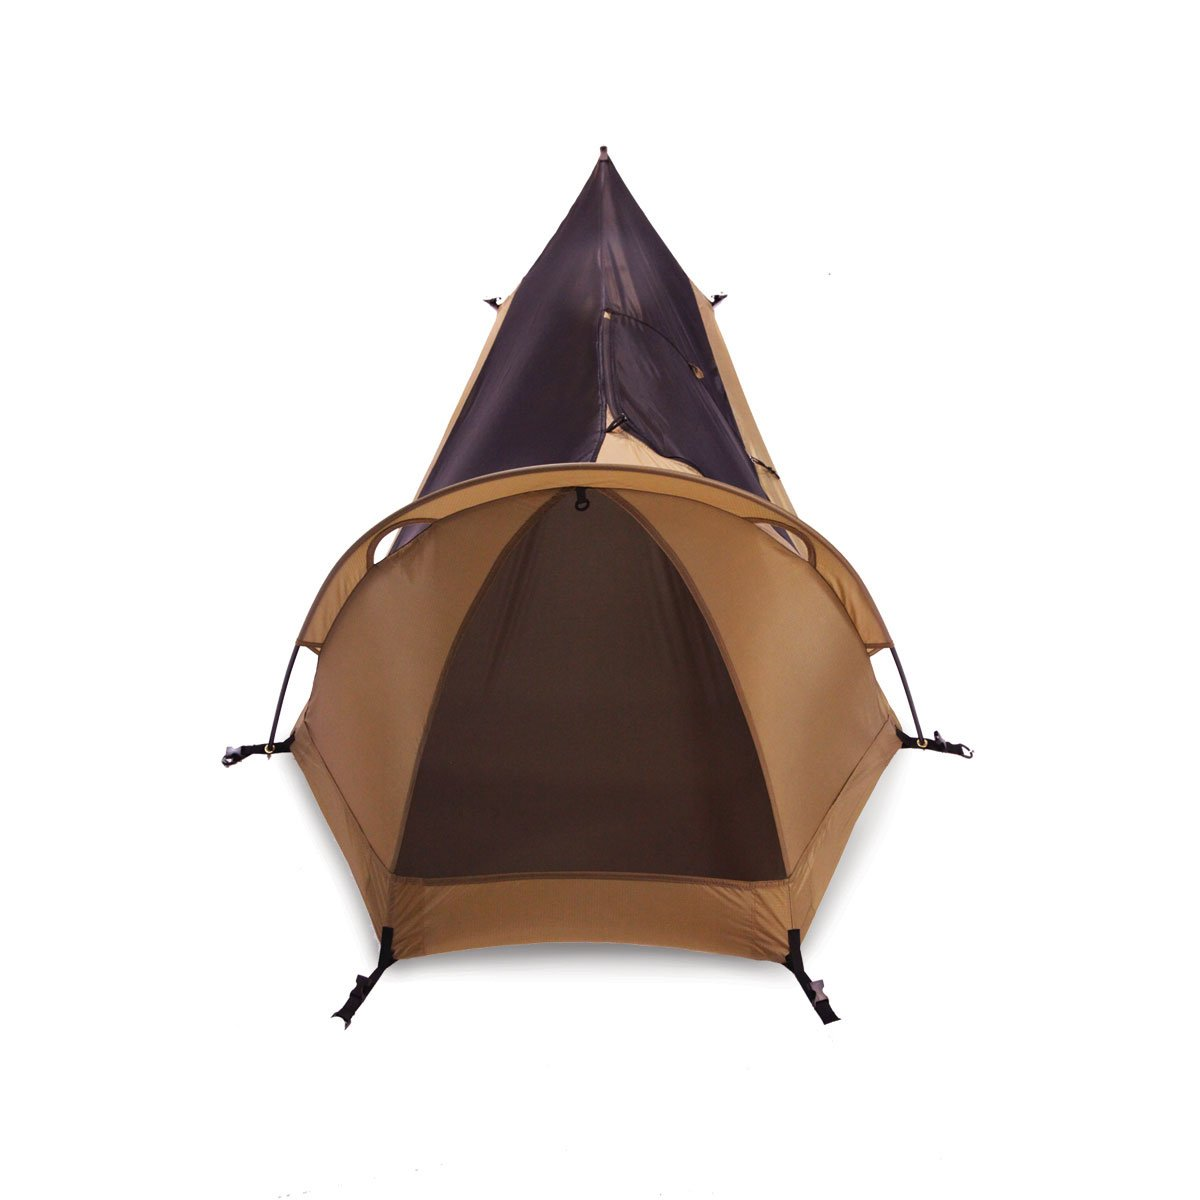 sc 1 st  Amazon.com & Amazon.com: Raider Ultralight Solo Tent: Sports u0026 Outdoors